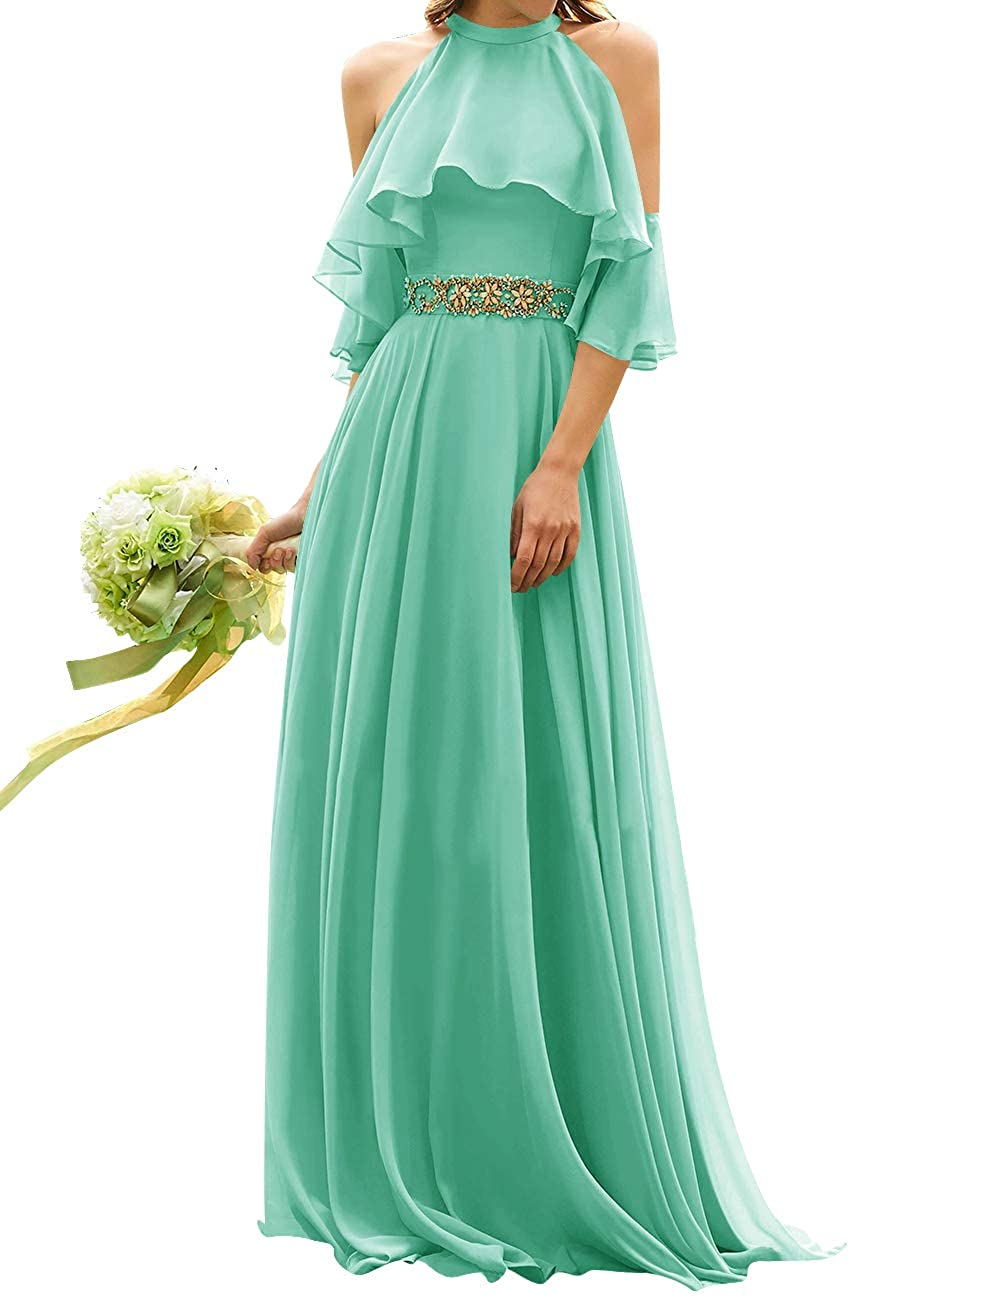 Aqua Uther Long Bridesmaid Dress Cold Shoulder Beaded Ruffle Sleeves Wedding Party Dresses